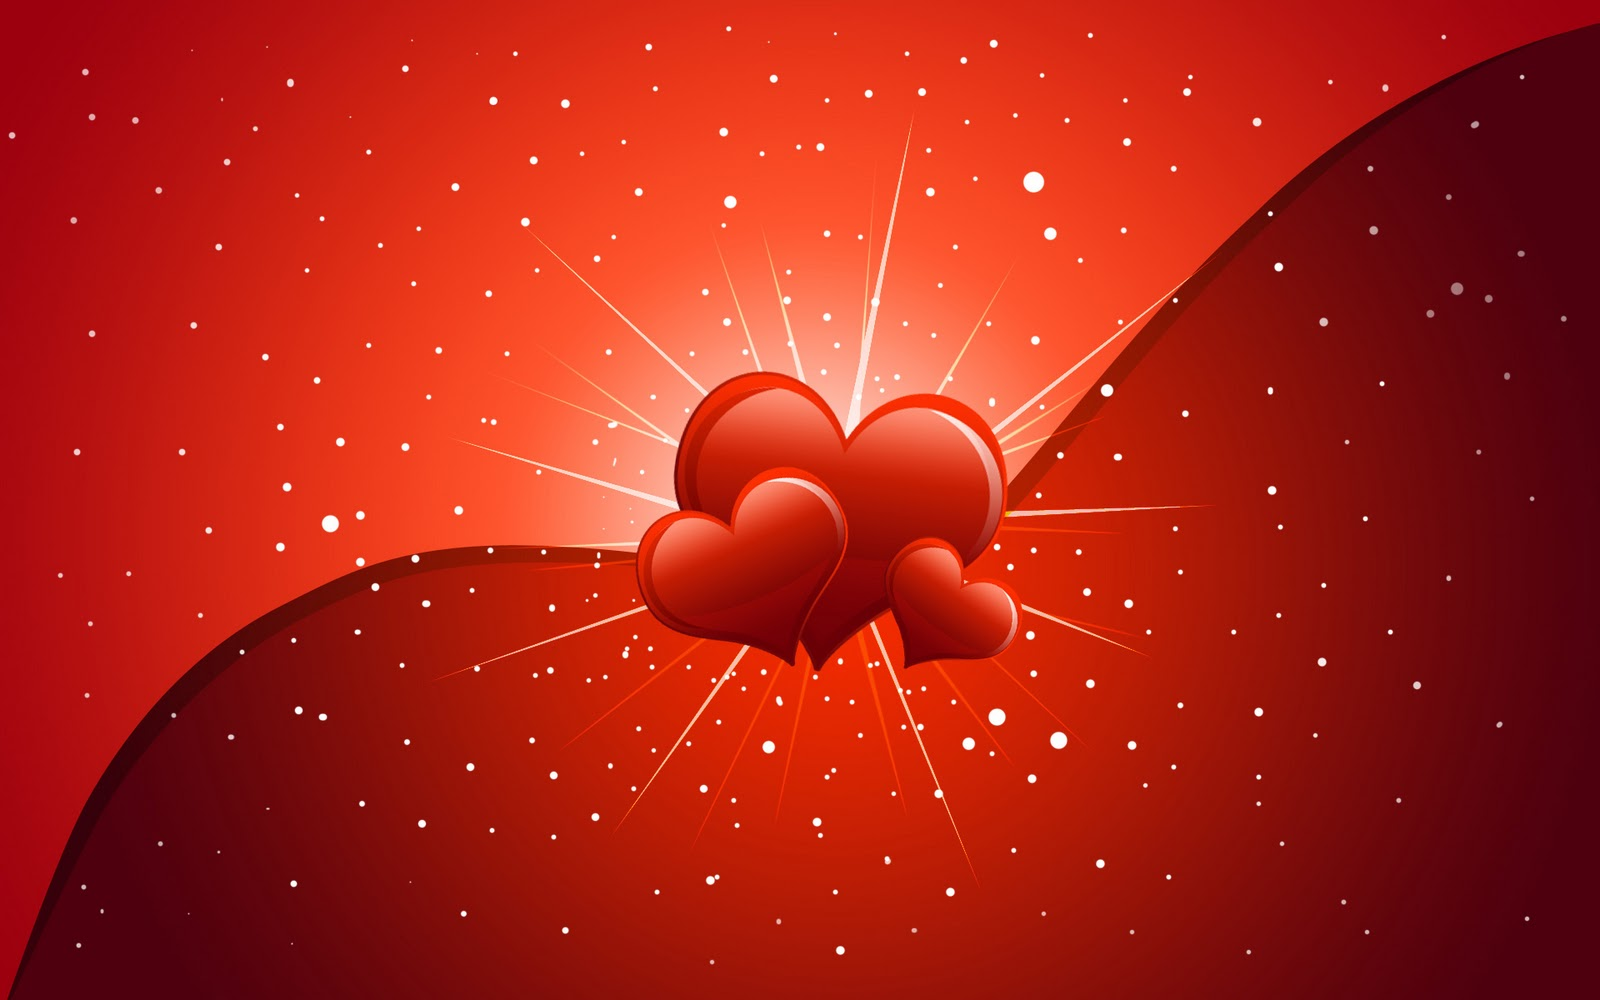 http://2.bp.blogspot.com/_oFDQgW3nuwI/TUerPDnAP_I/AAAAAAAADMM/3aibnQSupGU/s1600/valentine-wallpapers-Love-Backgrounds.jpg